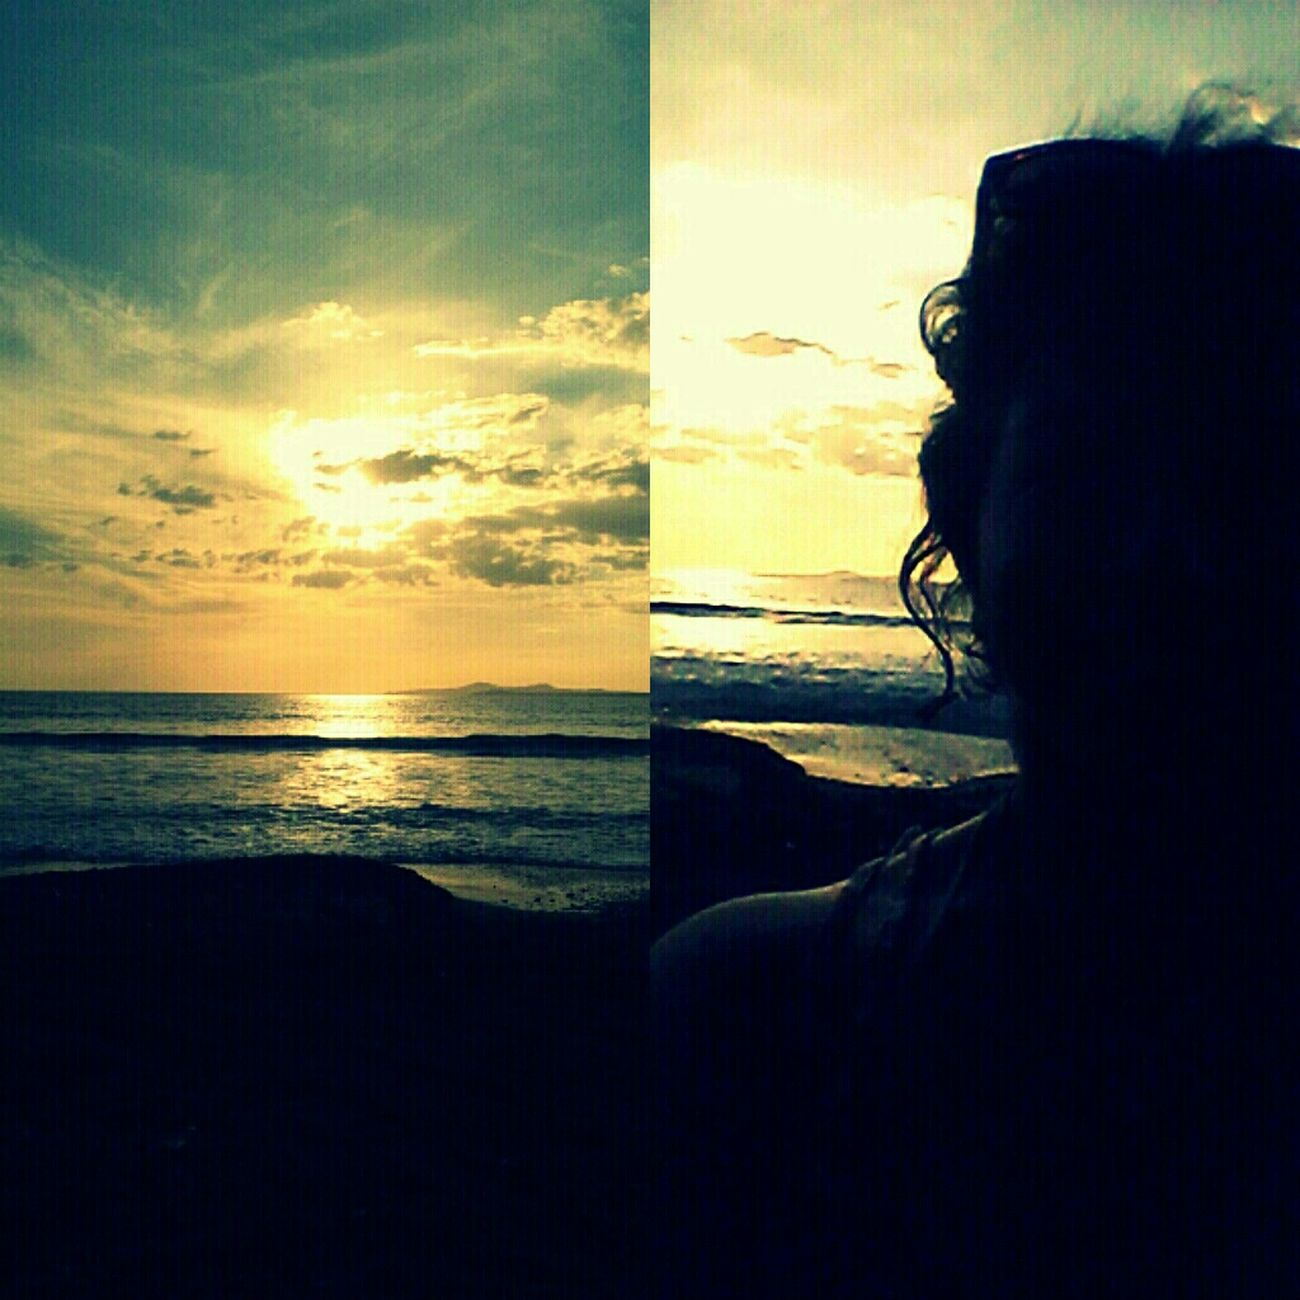 #beach #sky #sunset #water #sun #enjoying The Sun %